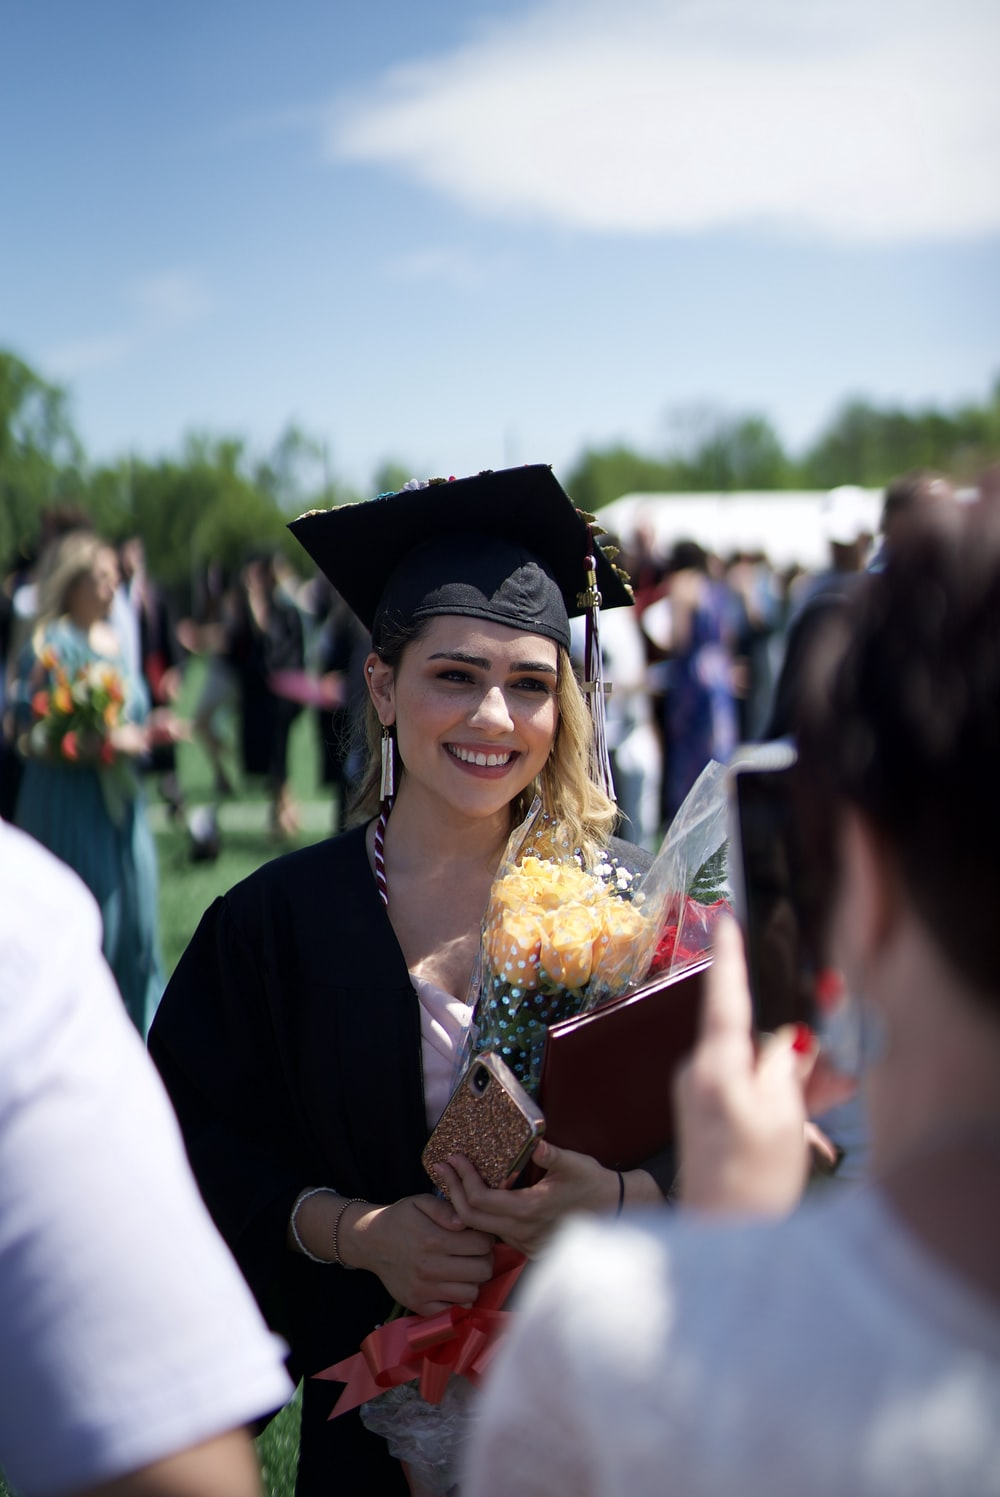 woman in academic dress smiling